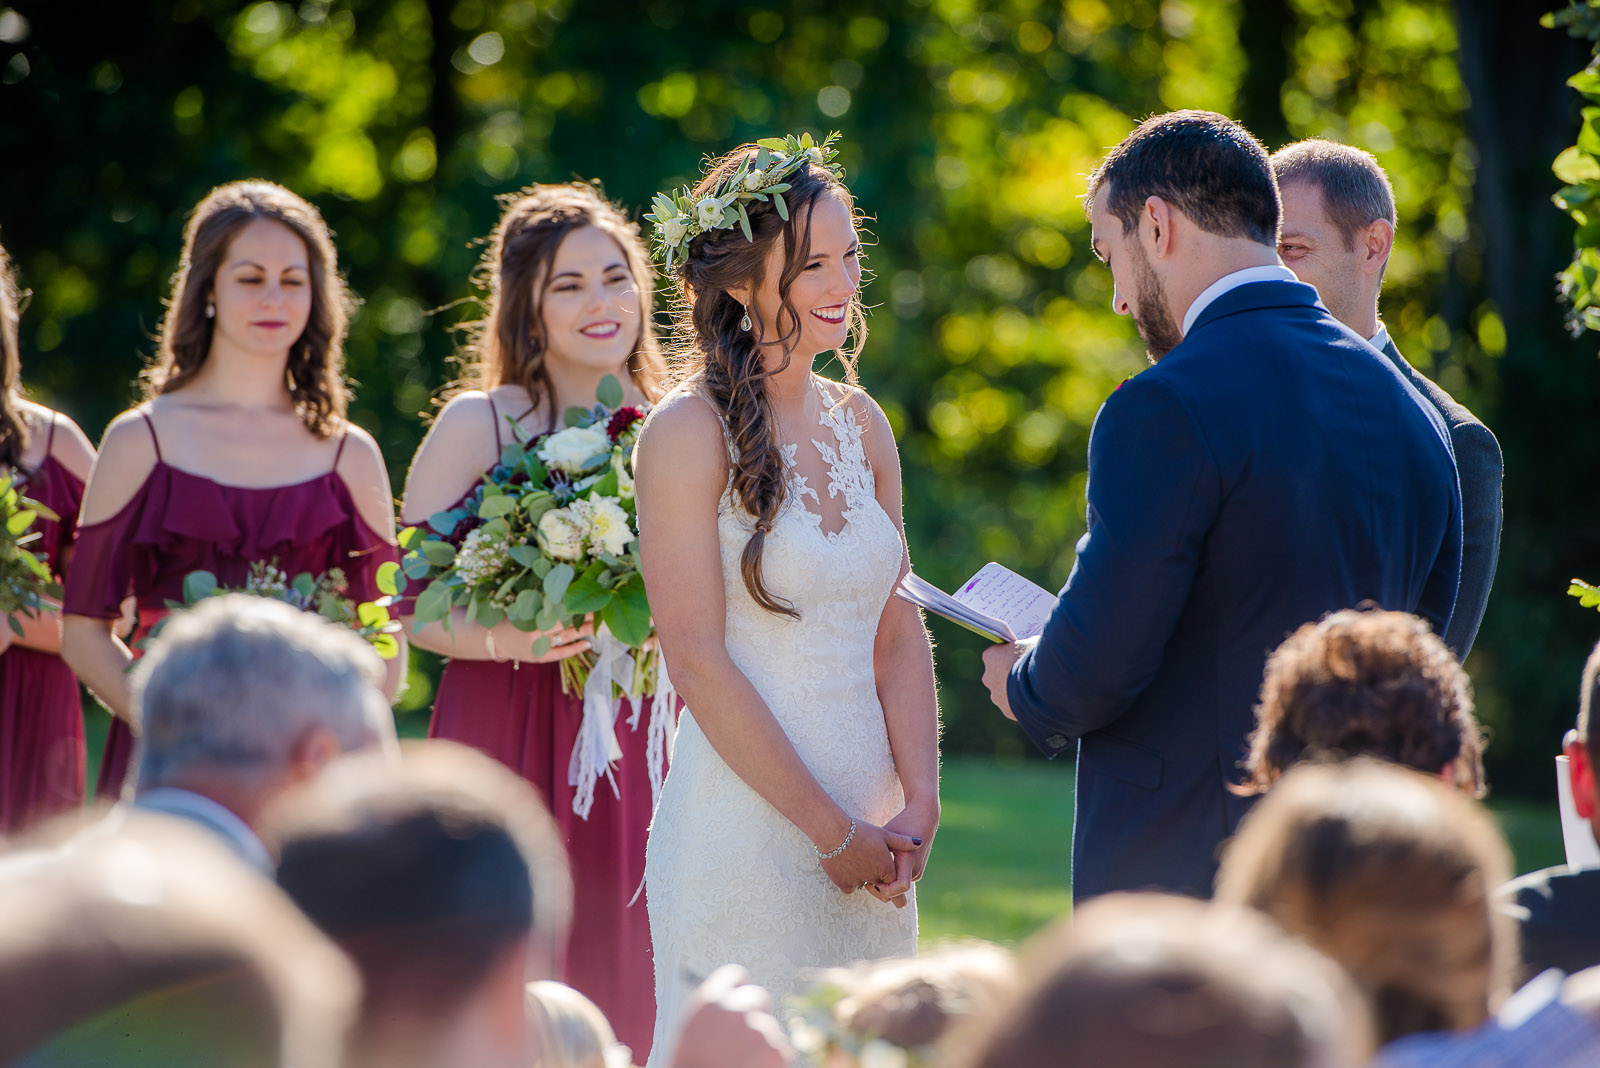 Eric_and_Christy_Photography_Blog_2018_Wed_moments-58